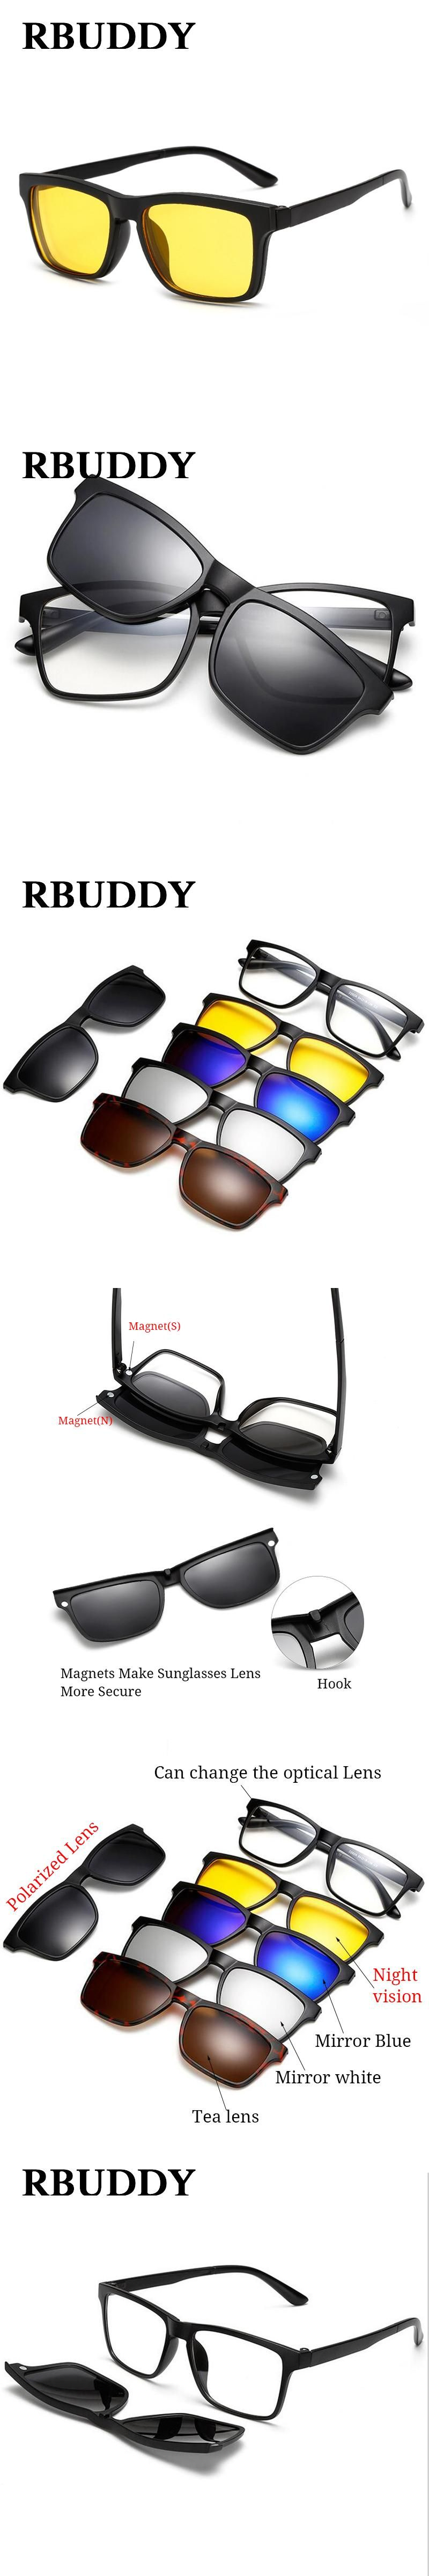 5833351773 RBUDDY Magnet Sunglasses Men Polarized clip on sunglasses Driving Square  women clear glasses frame Night vision goggles glasses